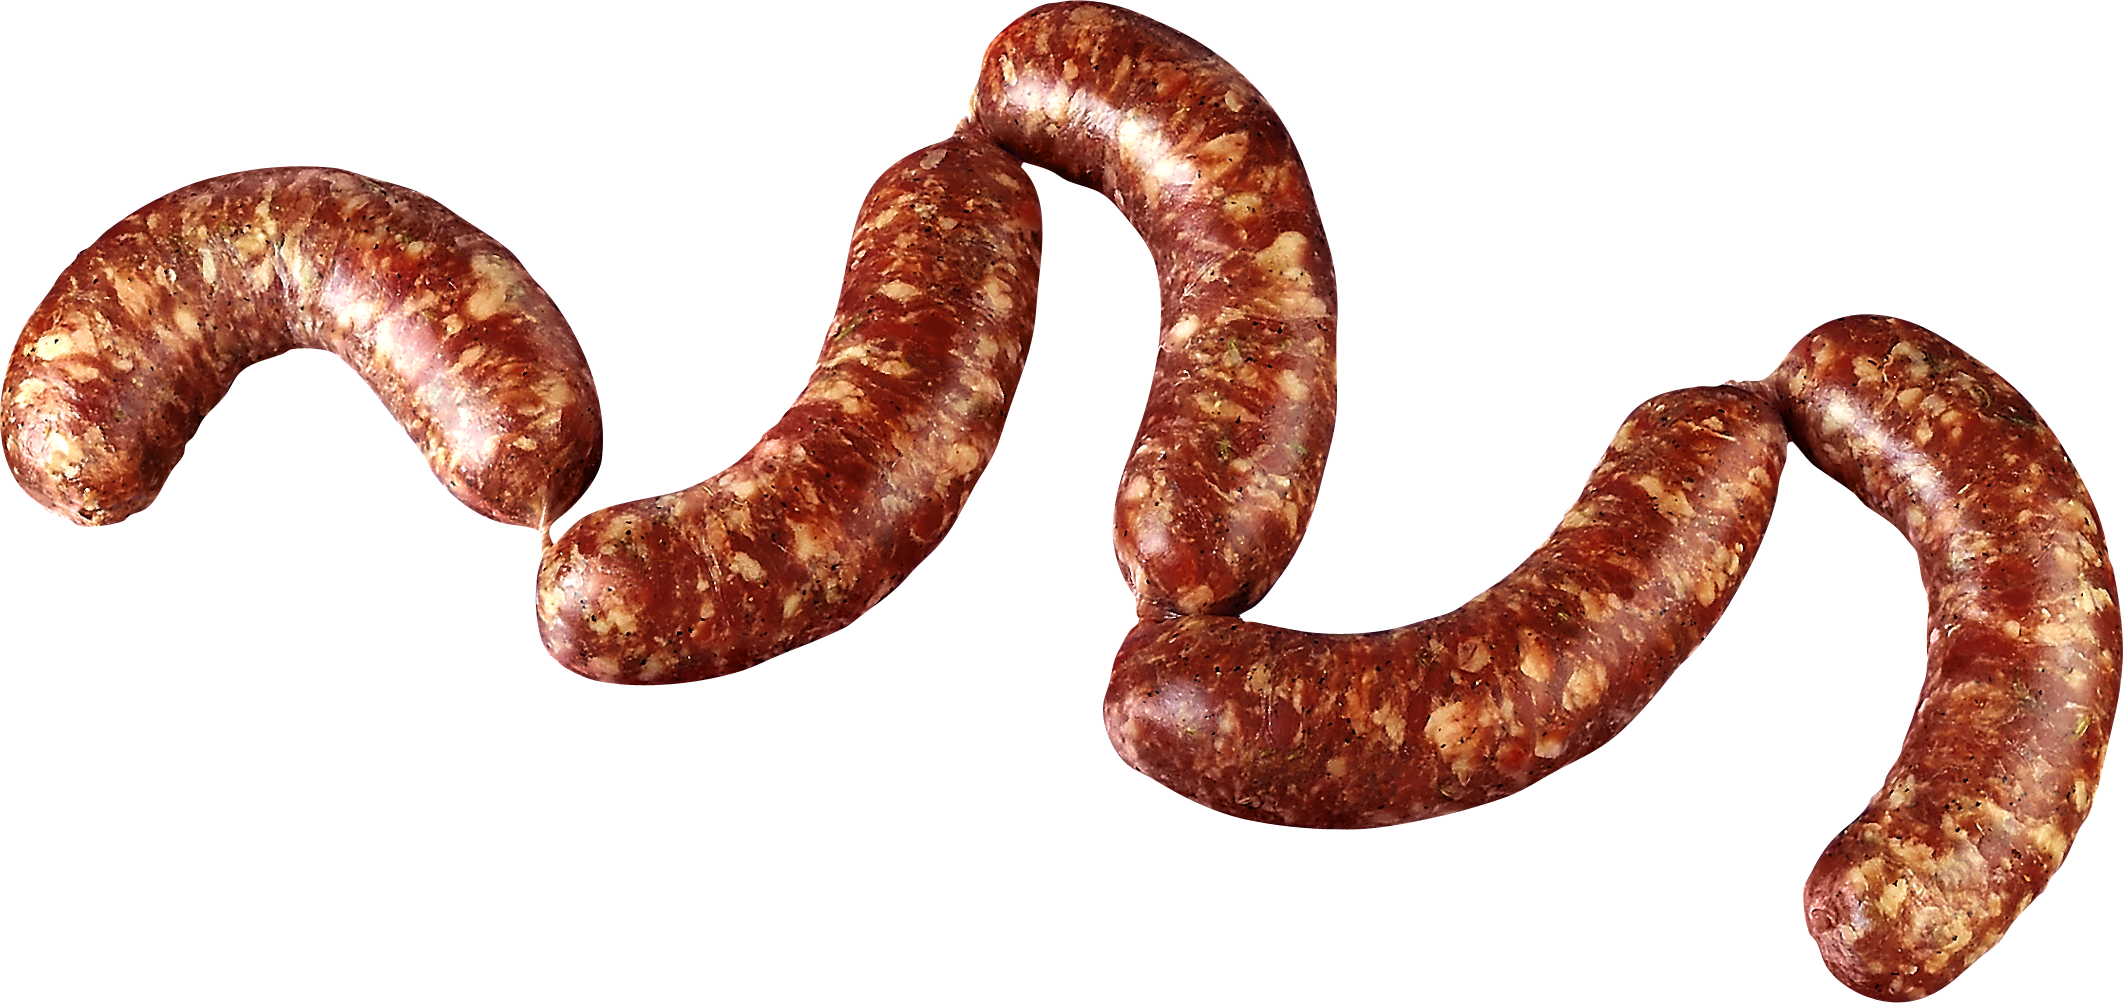 Sausage, Beef, Sausage, Coiled, Png Image 4857